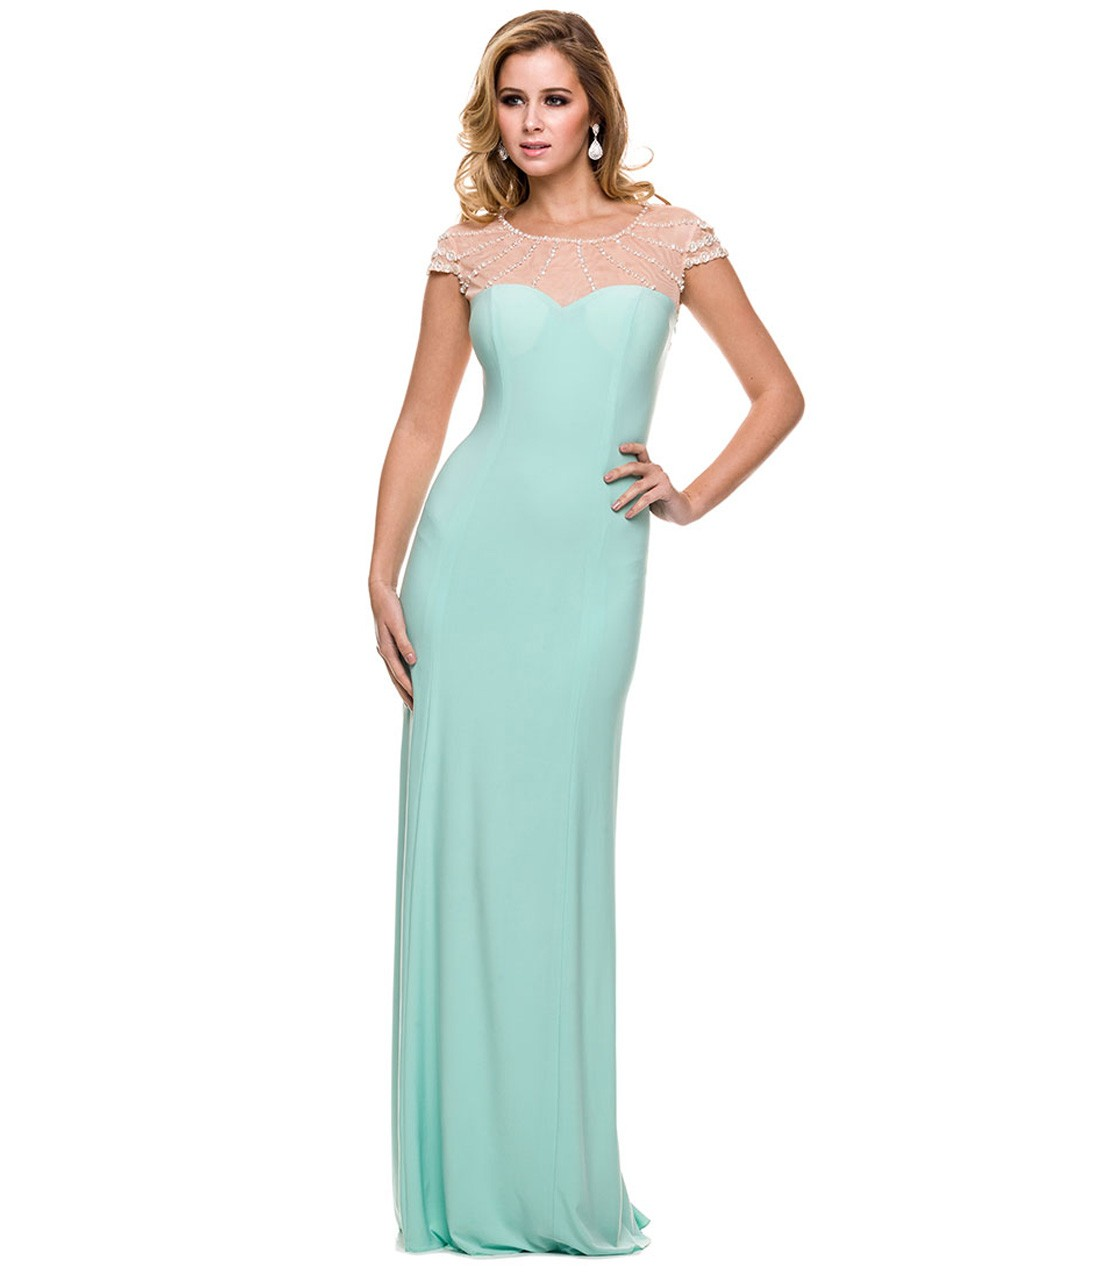 Chic Mint Long Jersey Illsuion Neck Long Prom Dress with Beading